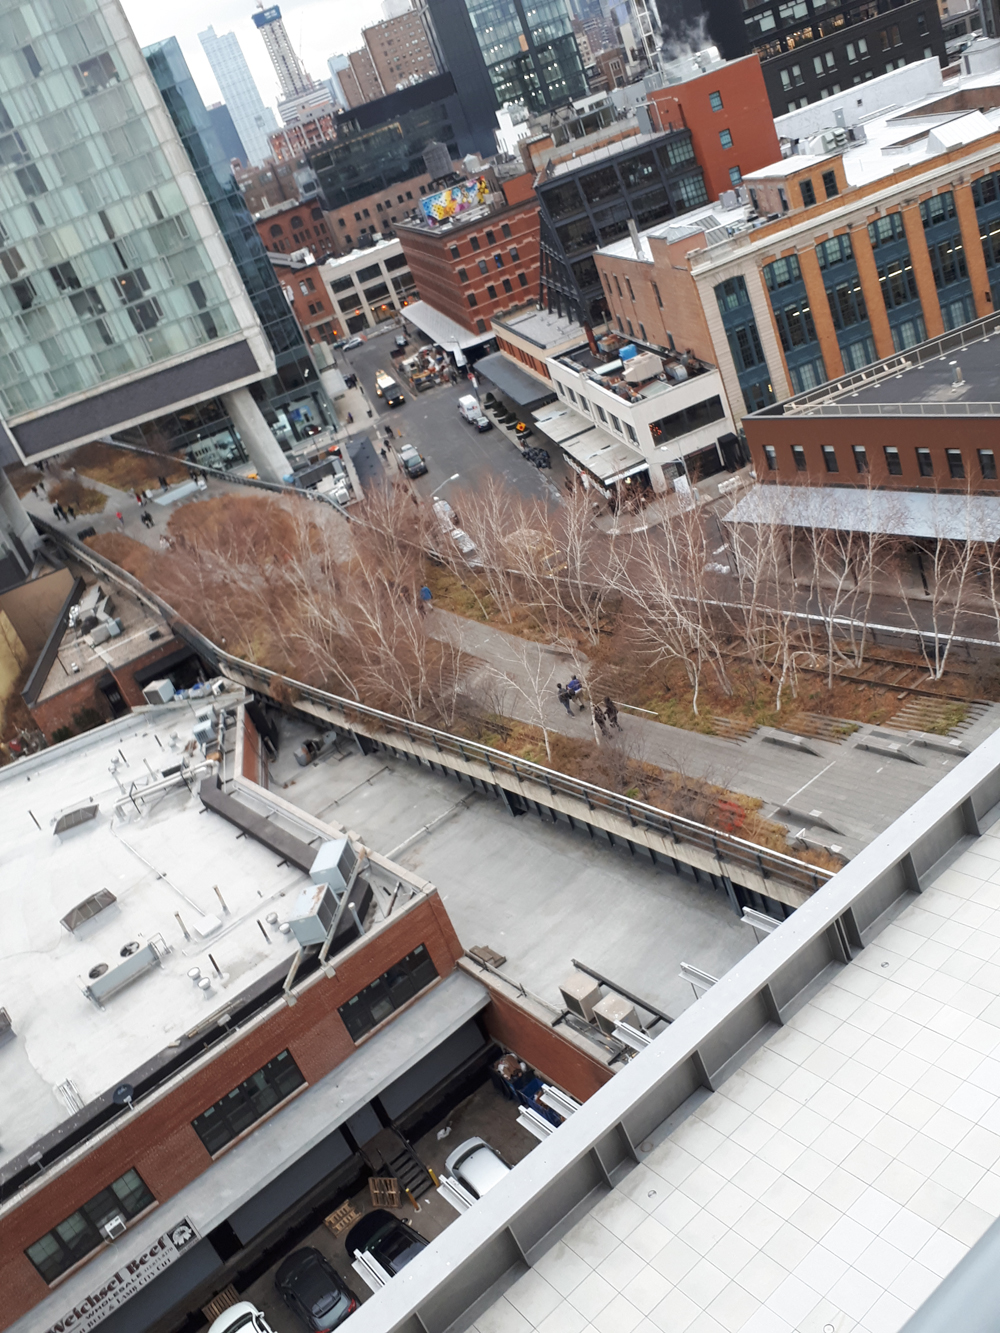 A view of New York City's Highline Park (using the defunct railway tracks - an fine example of landscape design that is stunning and people friendly. Photo taken from the third floor of the new Whitney Museum.